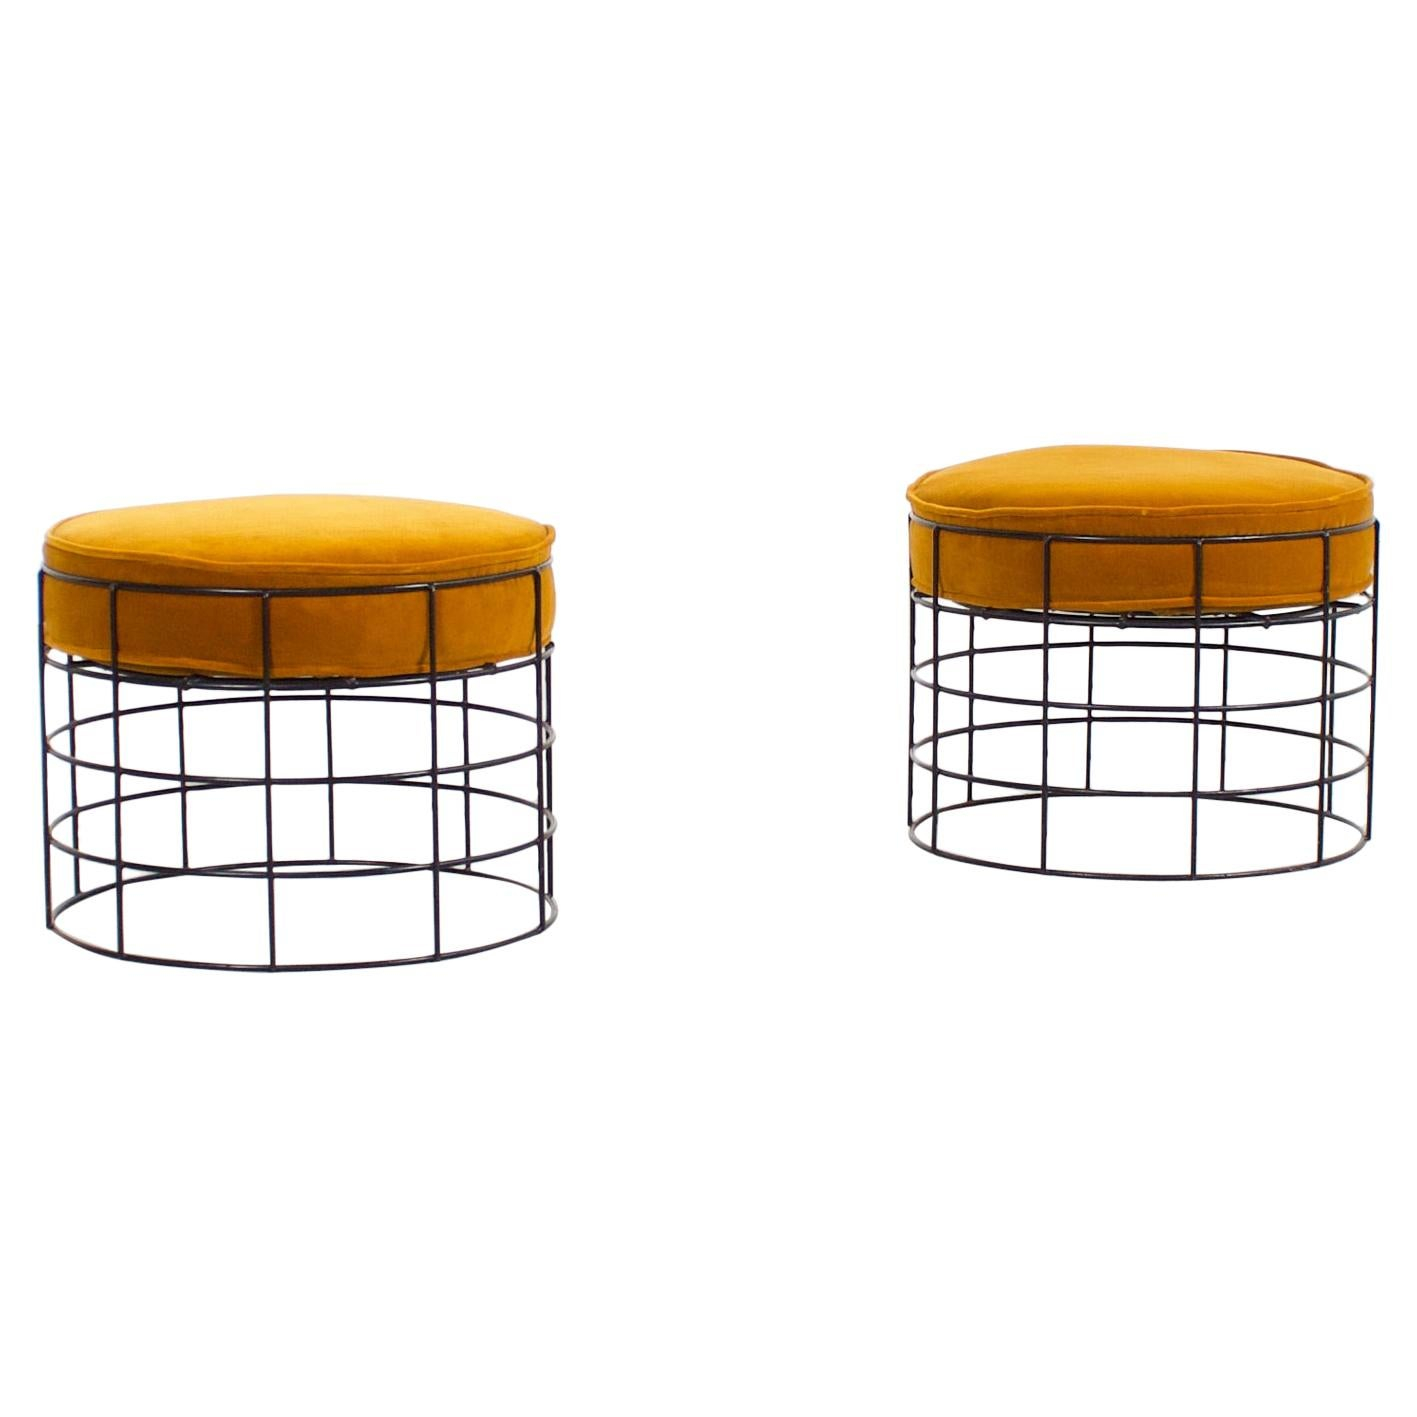 Set of T1 Wire Stools by Verner Panton, 1959